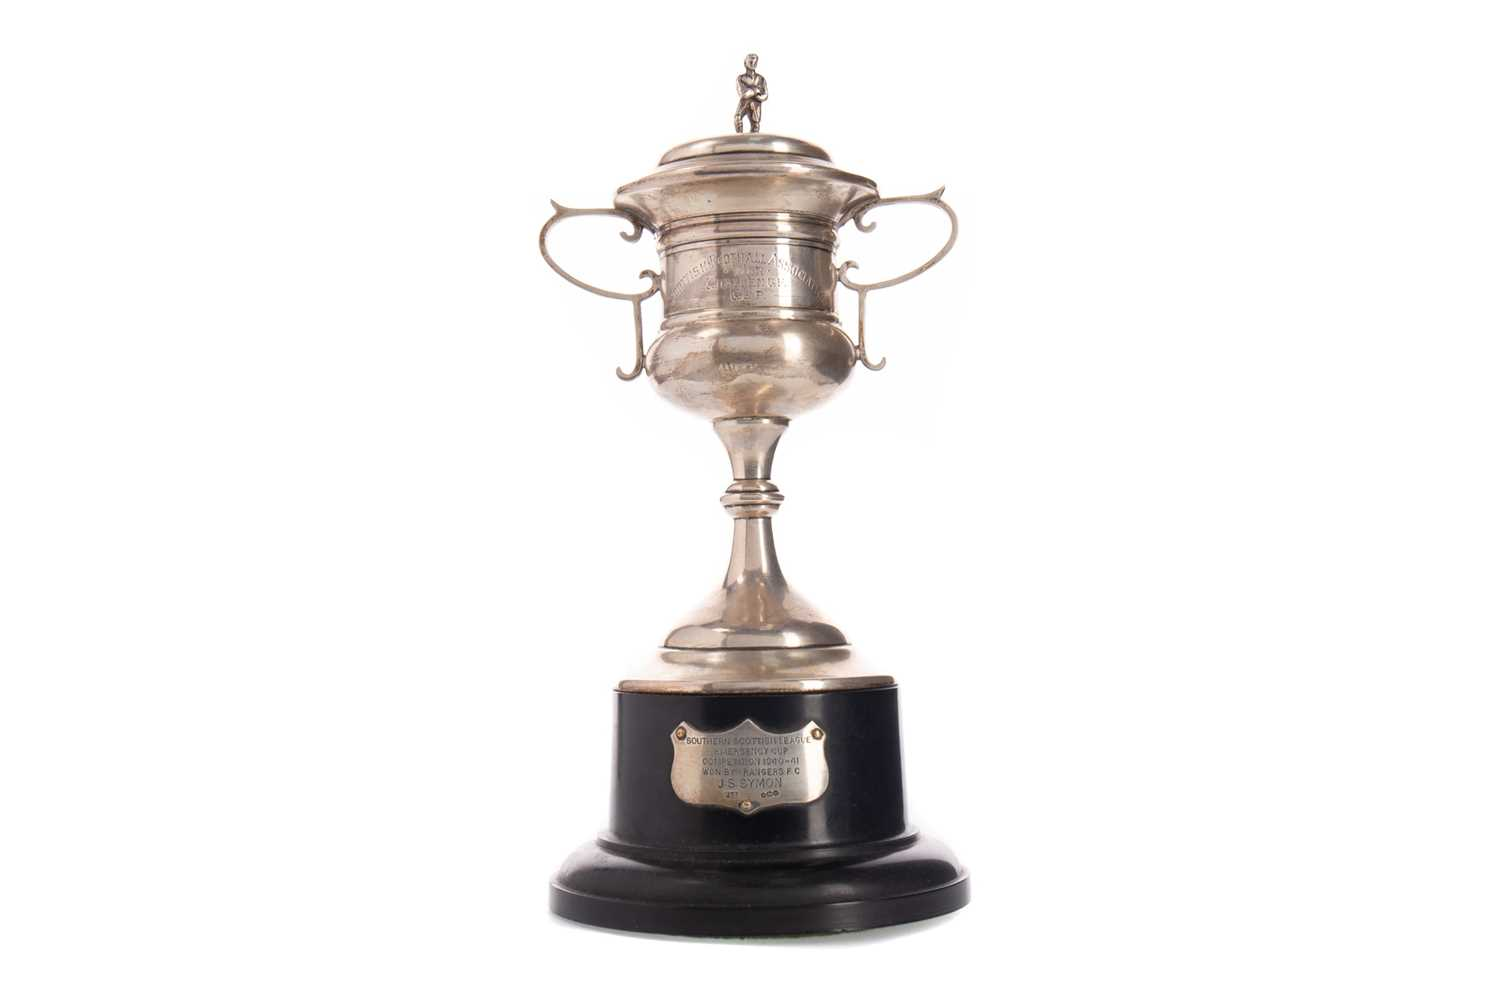 Lot 1745 - A RARE AND IMPORTANT PIECE OF RANGERS FC HISTORY - SCOT SYMON'S 1940/41 SOUTHERN SCOTTISH LEAGUE CUP